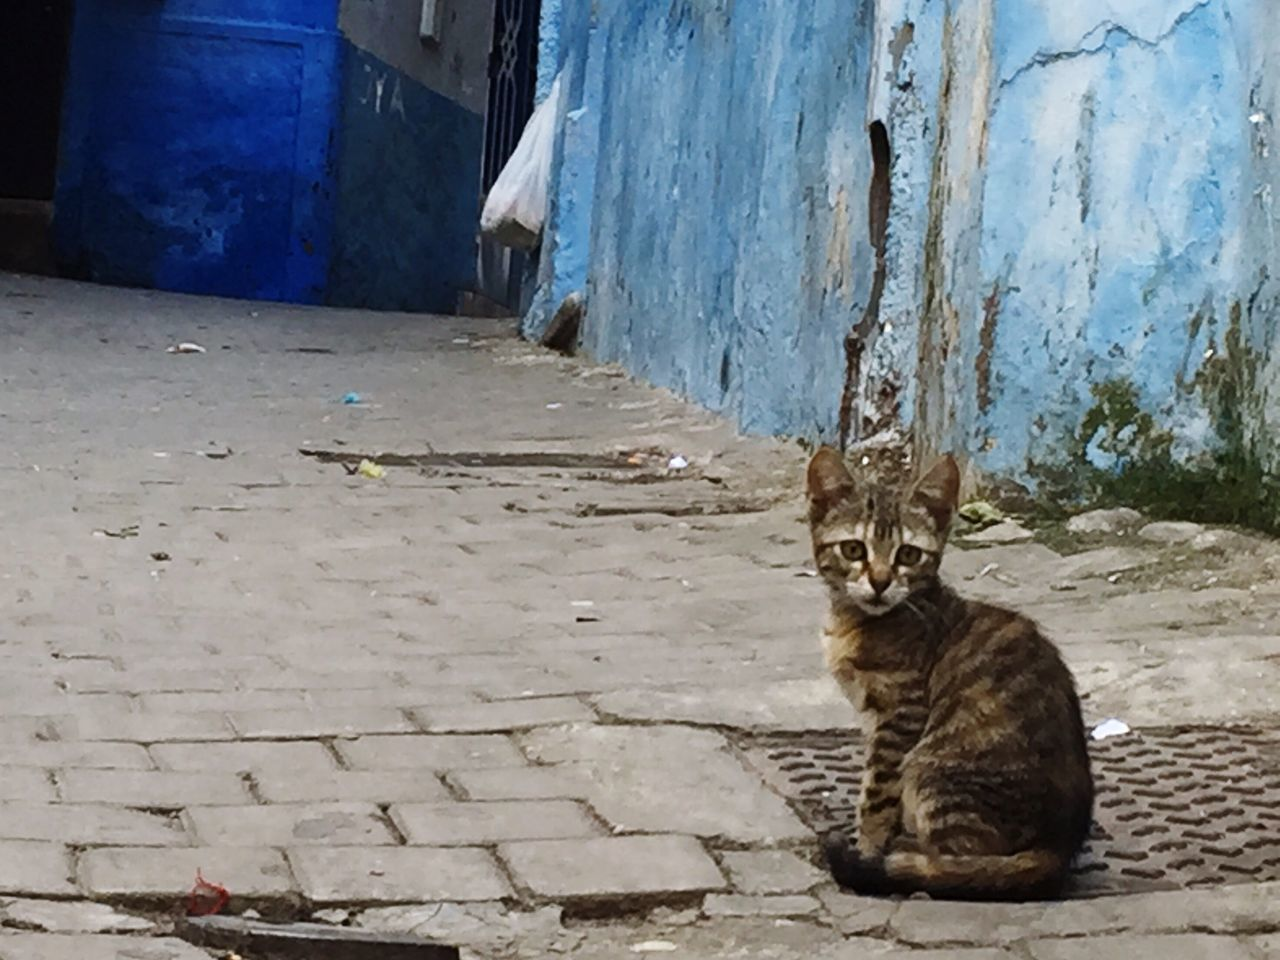 EyeEmNewHere Cat Morocco Tangier Stray Cat Cobblestone Blue Feline Animals Animals In The City Animal Kitty